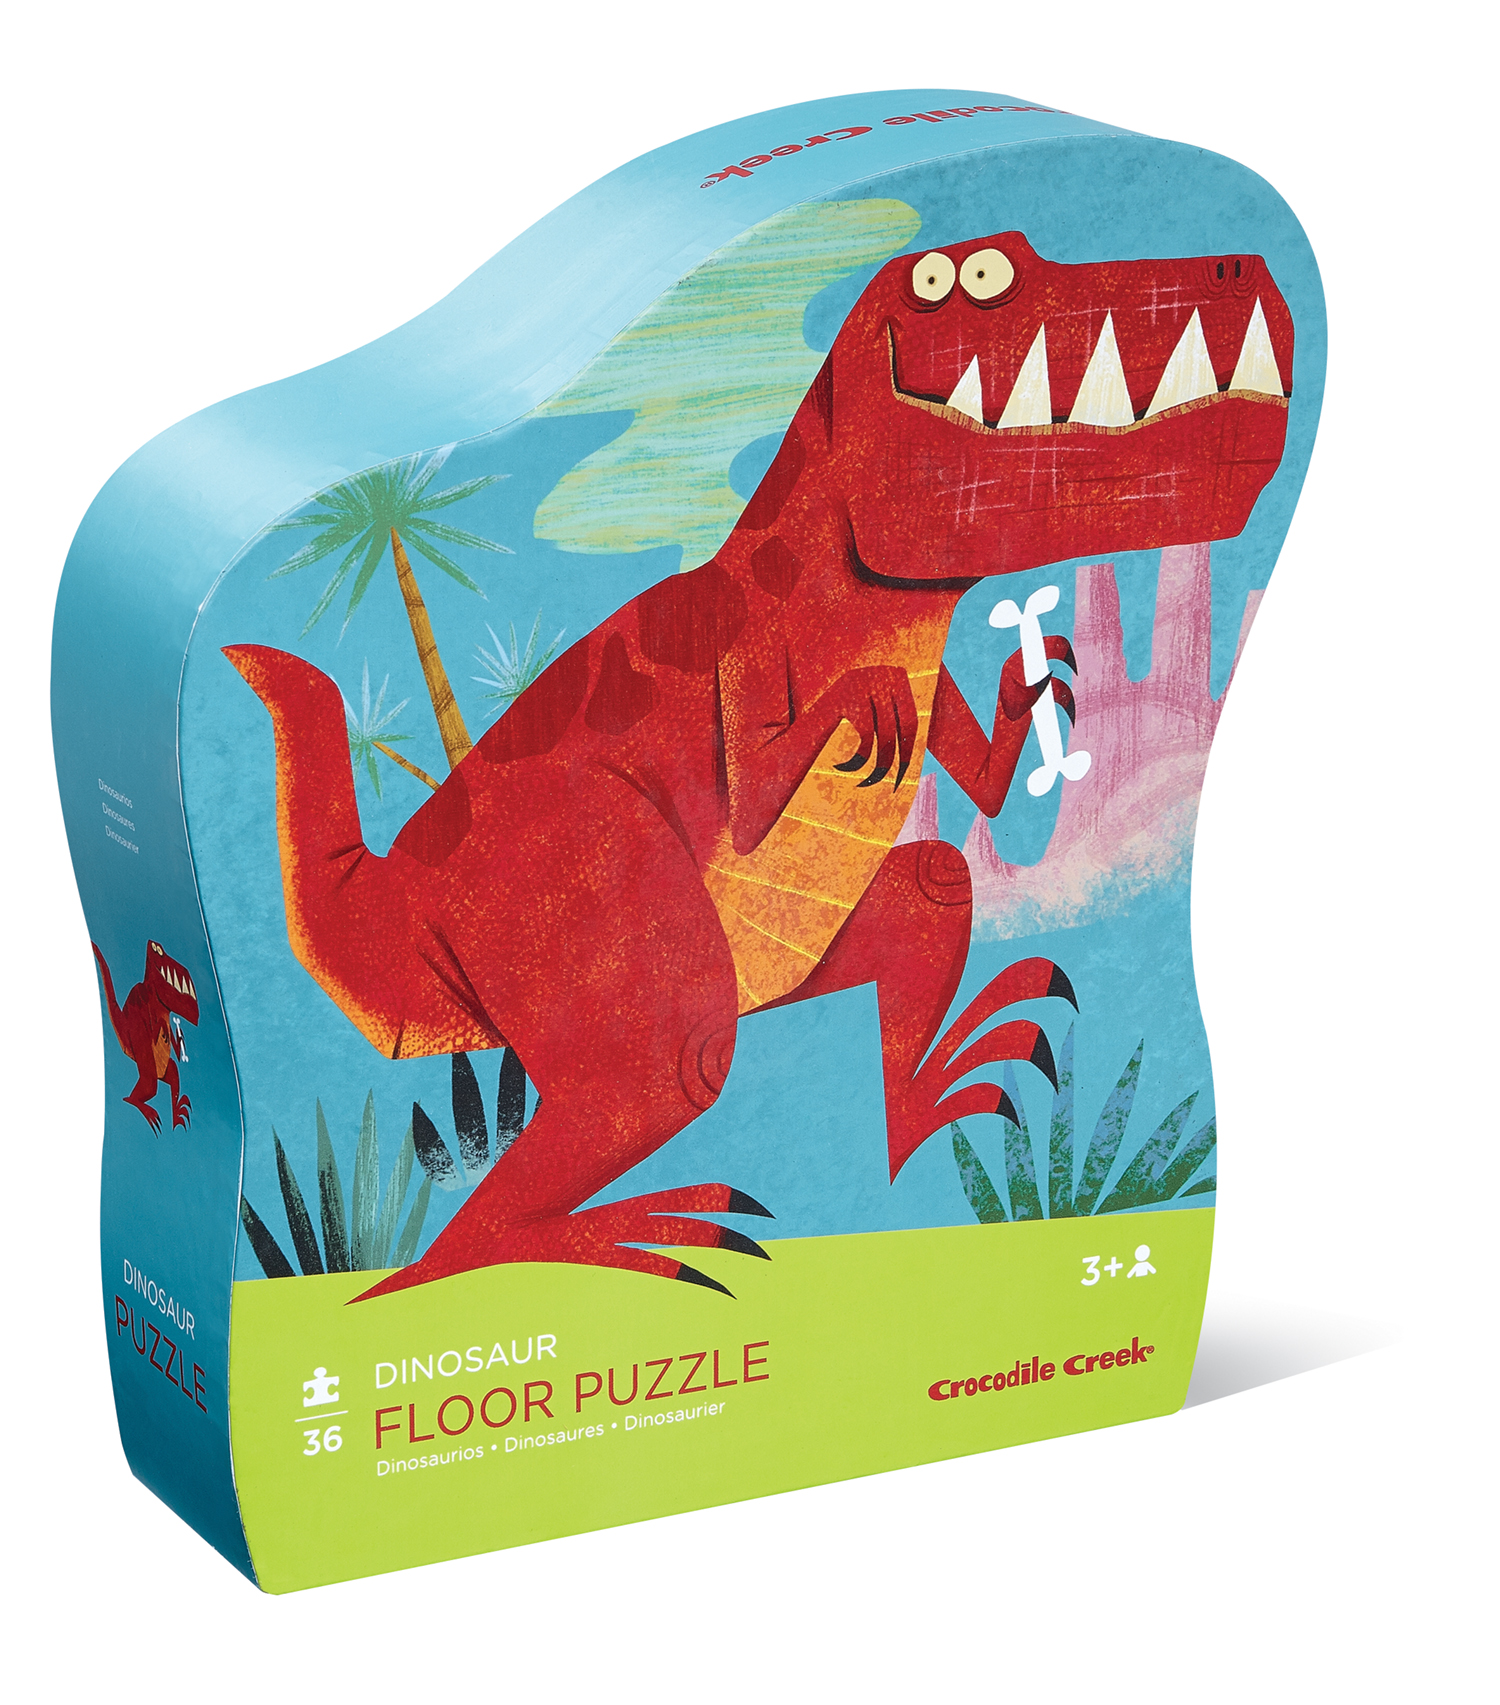 Classic Floor Puzzle 36 pc - Dinosaur by Crocodile Creek 3 +